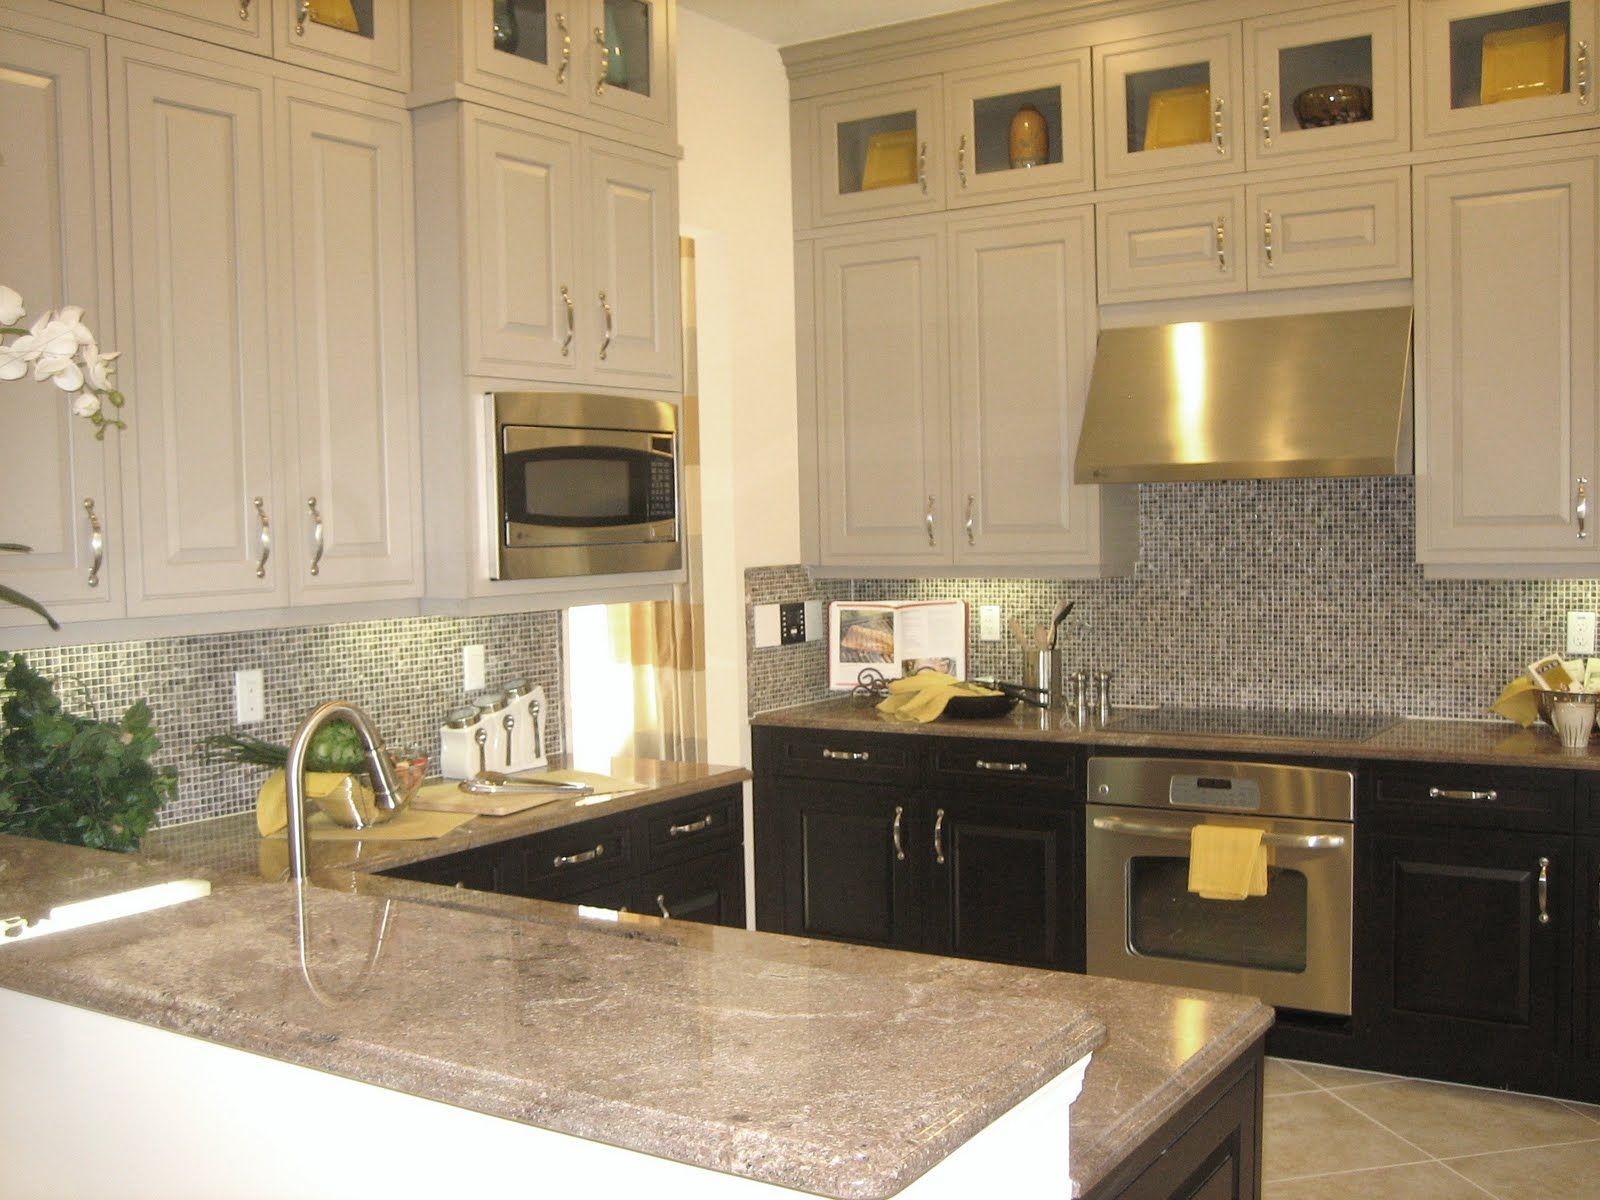 kitchen two tone kitchen cabinets best images about Kitchen on Pinterest Maple floors Islands and Two tone kitchen cabinets